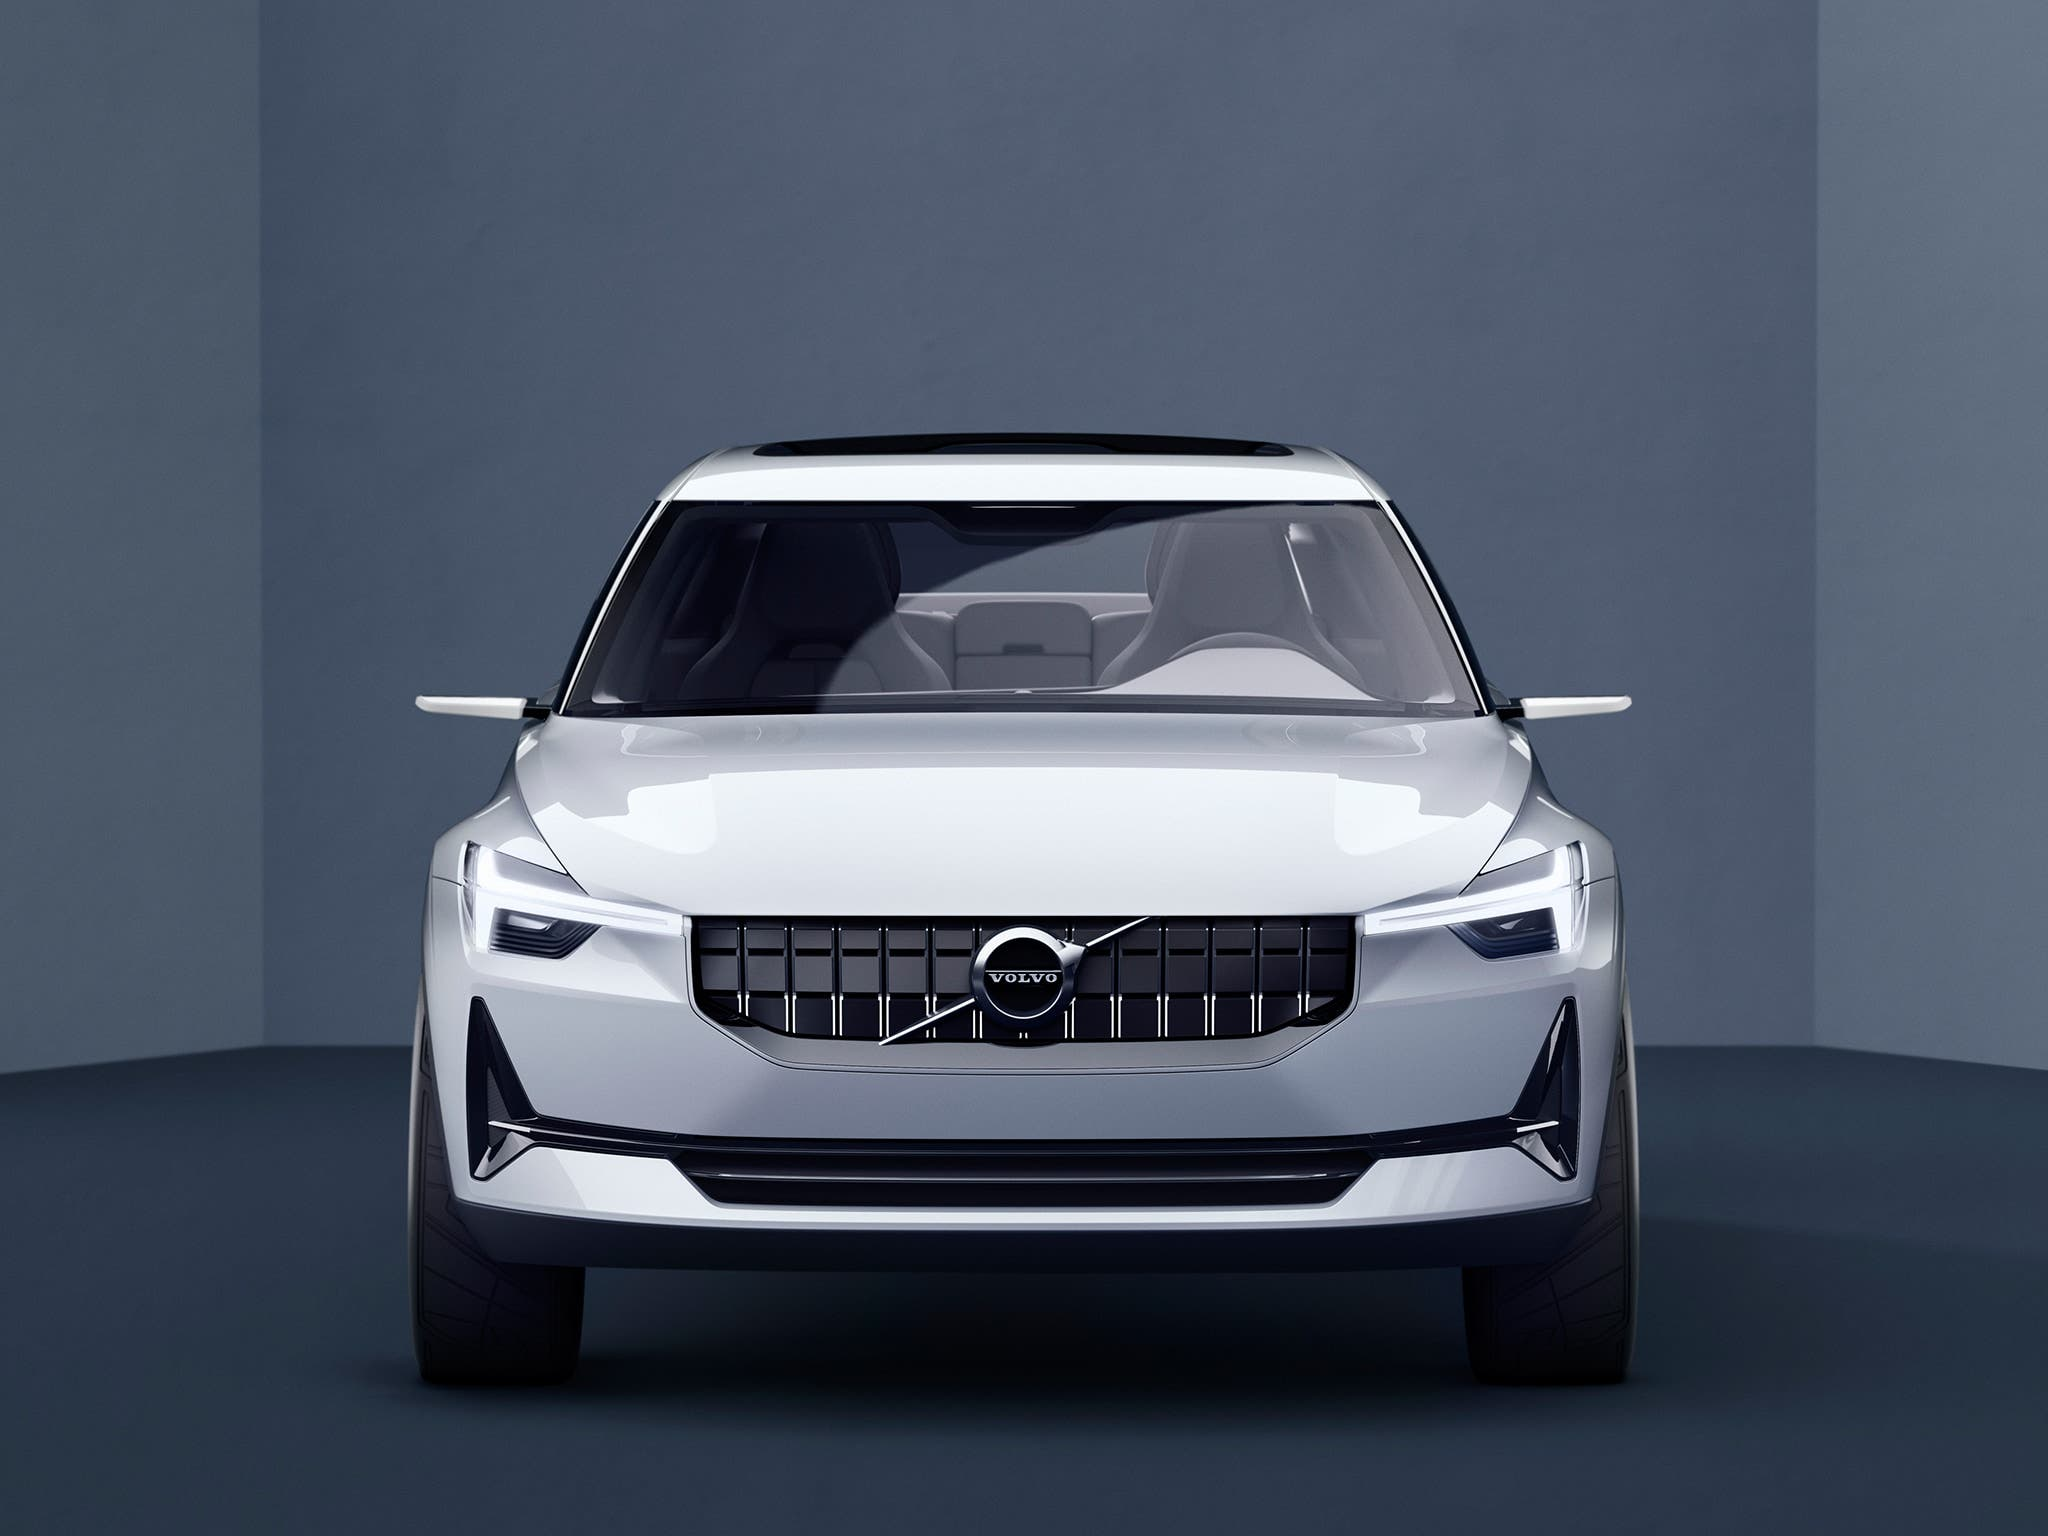 Polestar 2 From Volvo — Electric Sedan With 350 Mile Range